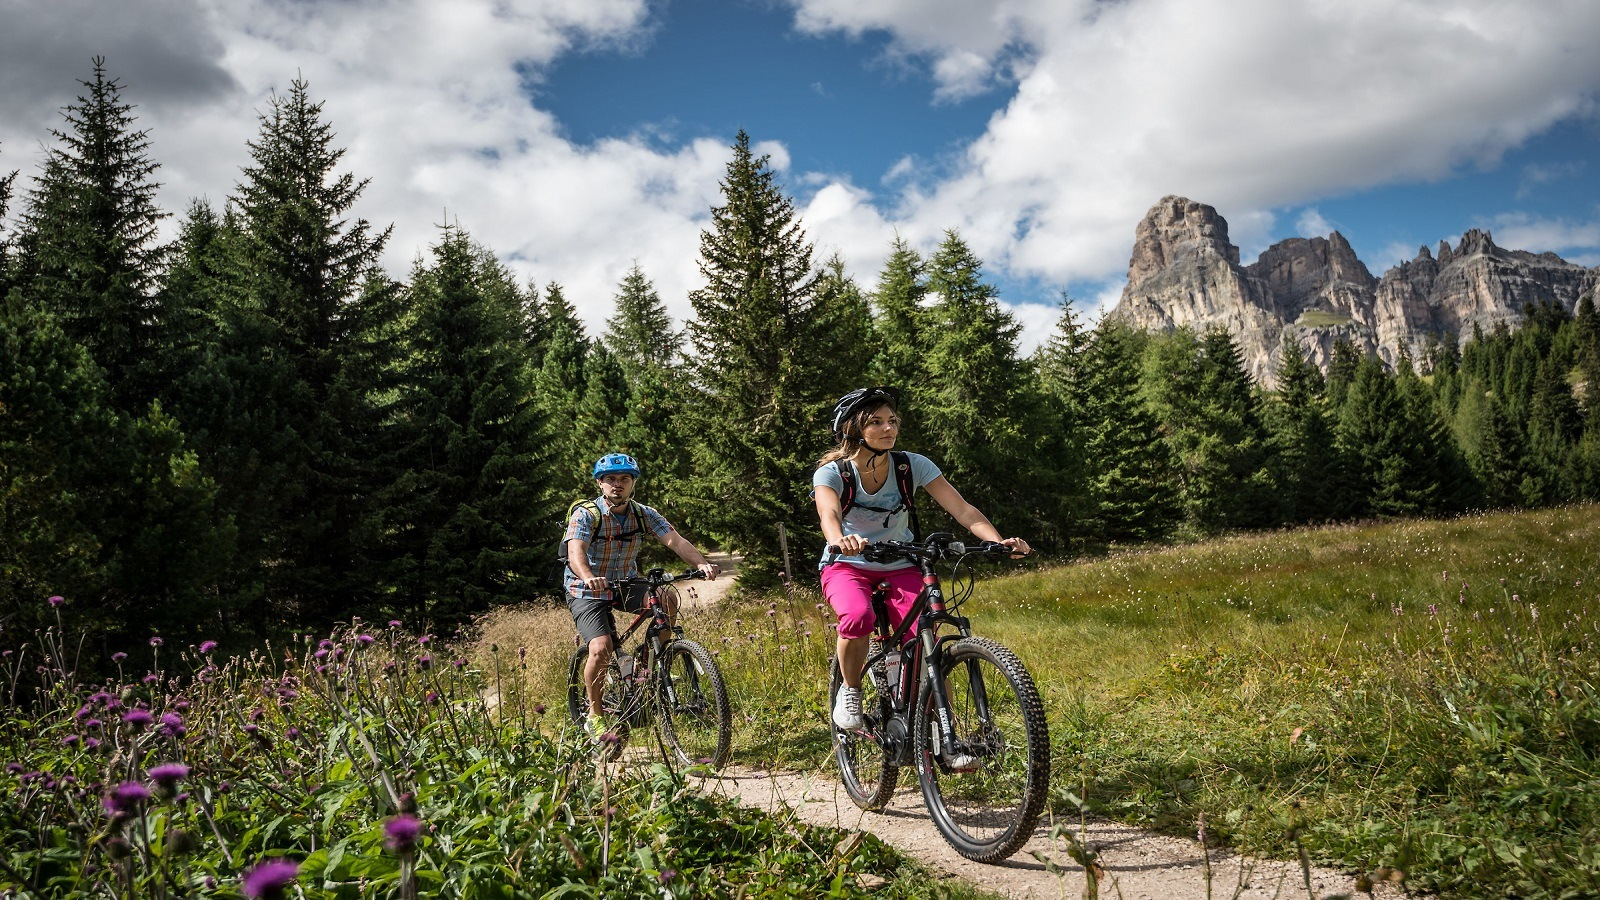 Alta Badia Bike sharing by Alex Moling